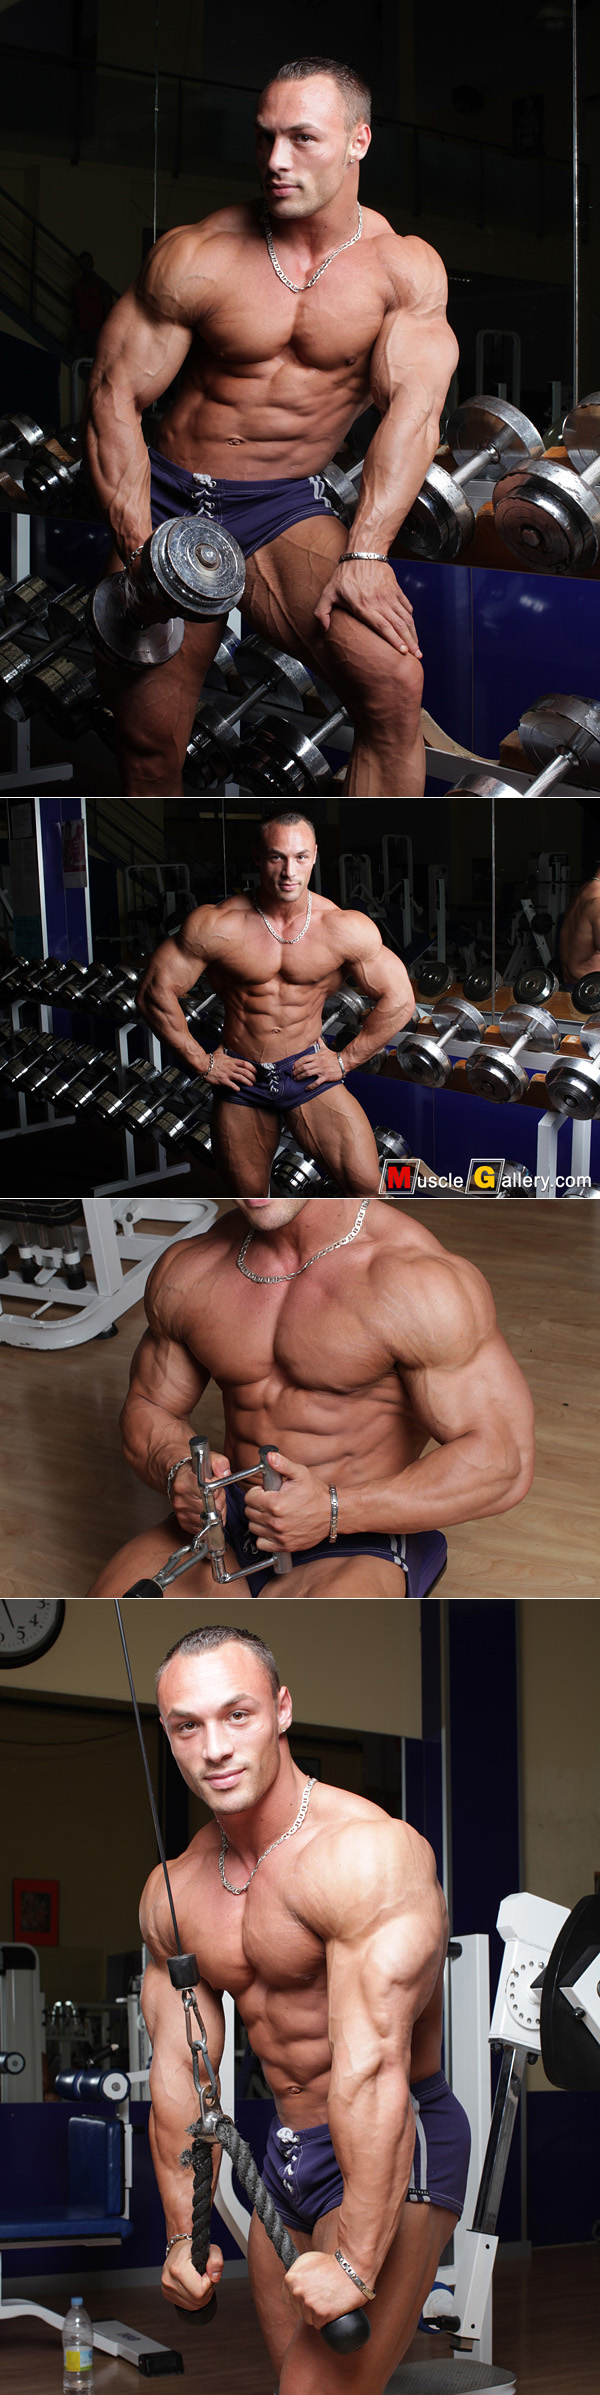 Bodybuilder Ludovic Bogaert working out